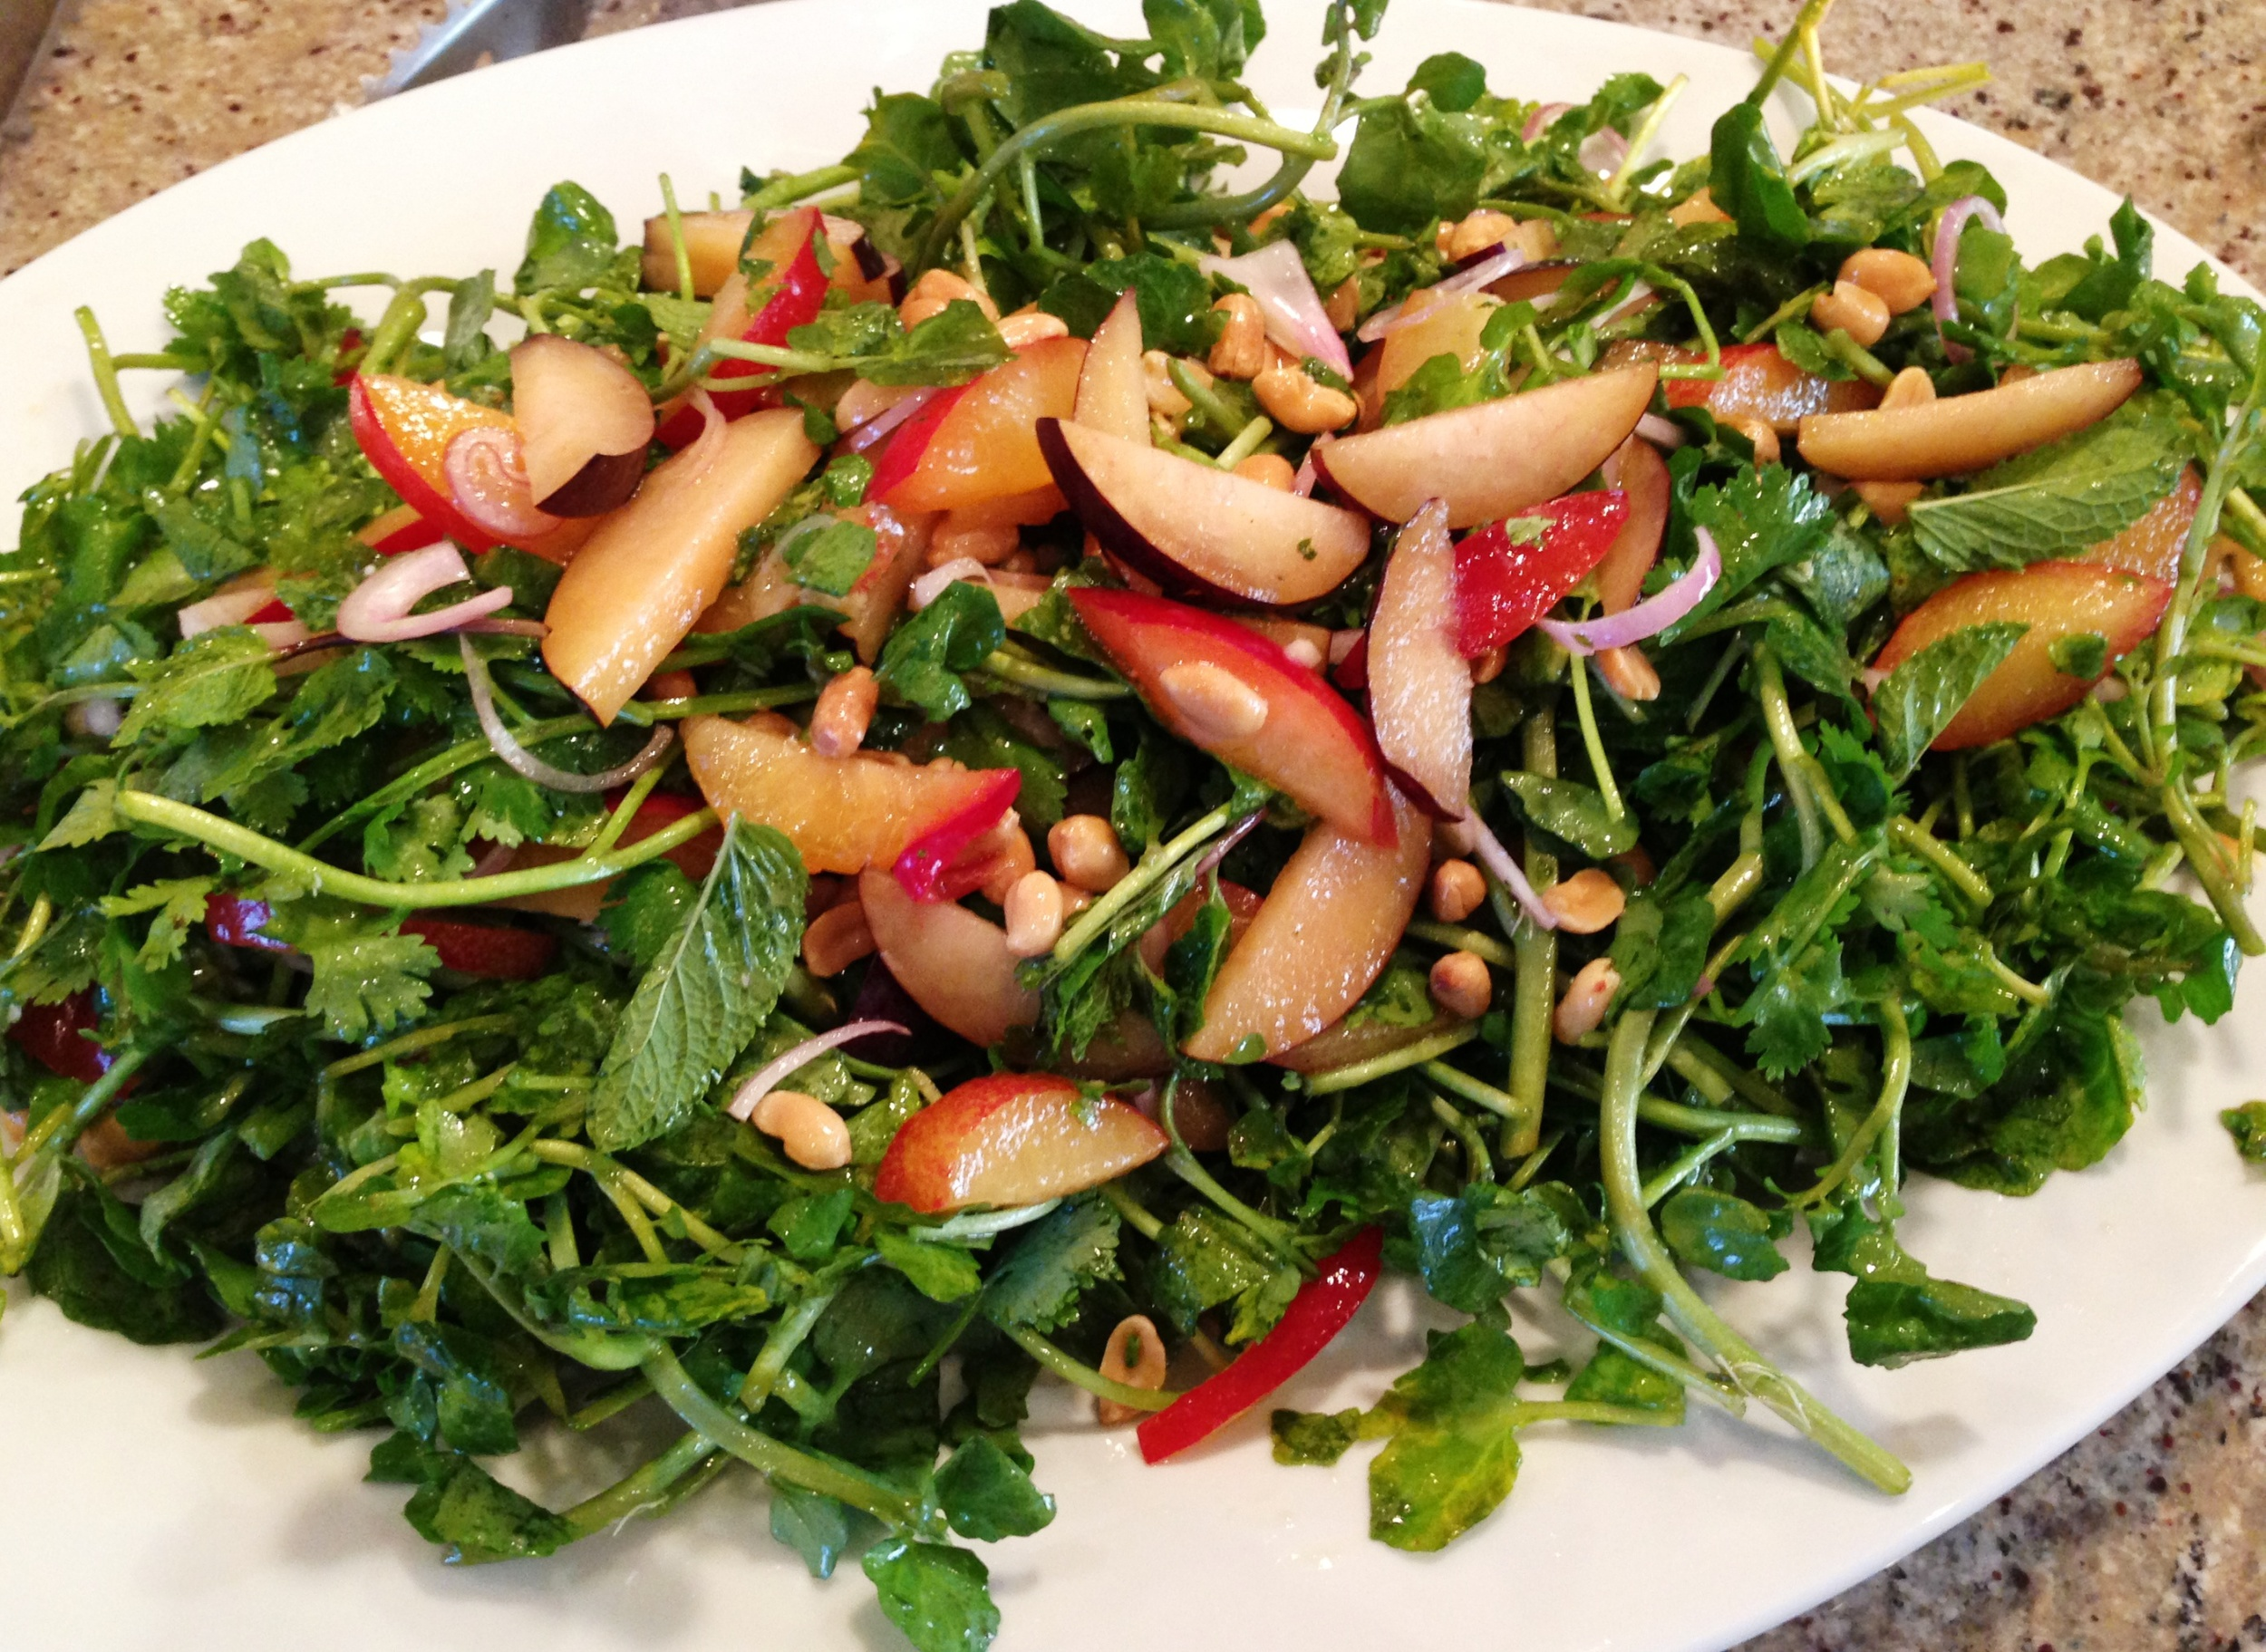 Watercress and herb salad with stone fruit, red onion, peanuts, and Vietnamese nuoc mam vinaigrette